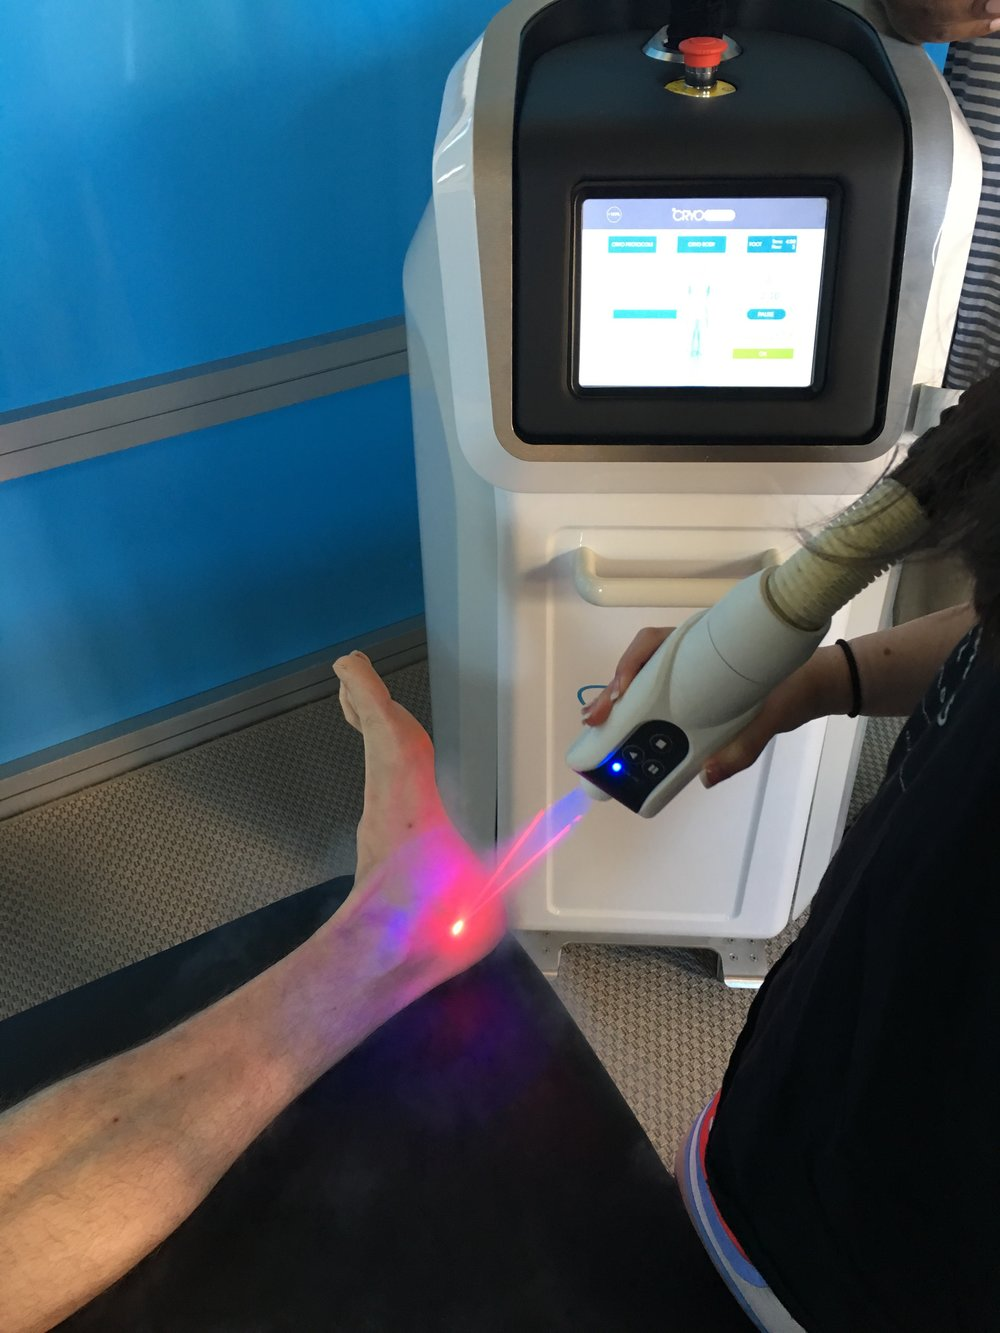 "<strong>Local Cryotherapy</strong><a href=""/local-cryo"">Find out more »</a>"